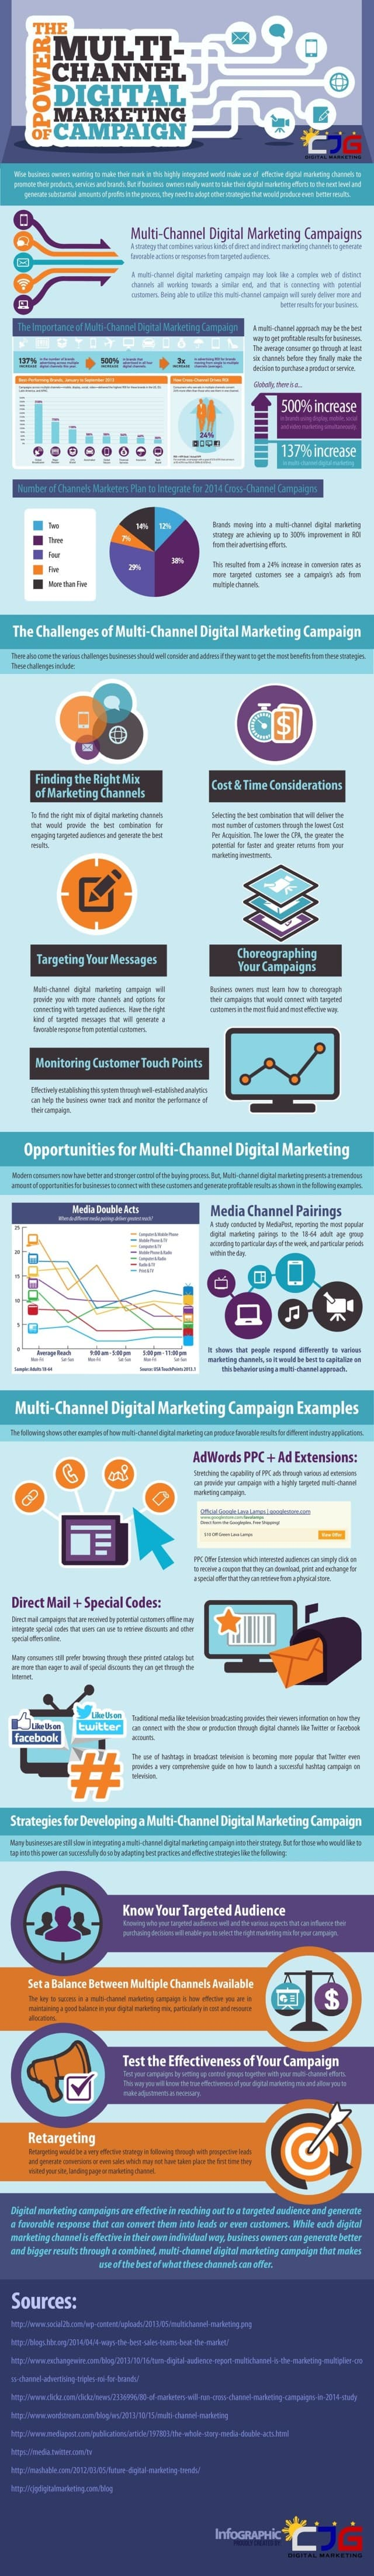 The-Power-of-Multi-Channel-Digital-Marketing-Campaign-640x44031442931525